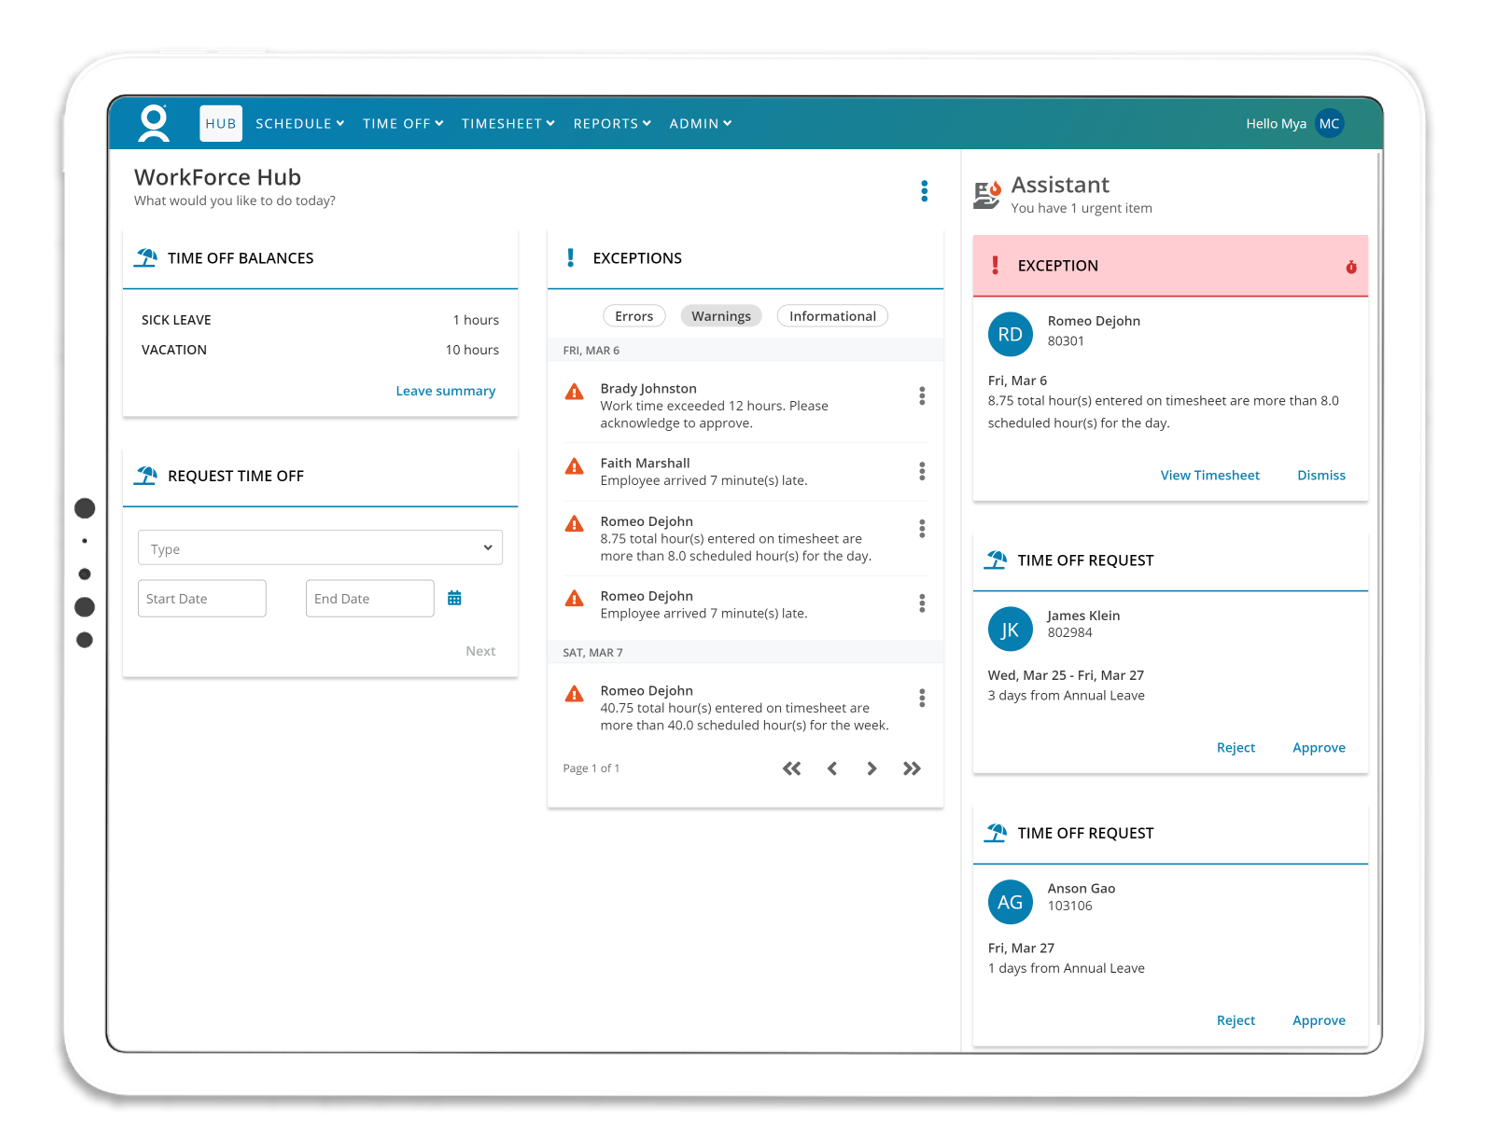 WORKFORCE HUB - Manager View – The WorkForce Hub takes a personalized one-stop-shop approach to provide a modern and mobile responsive view of the information that is most critical to the end user.